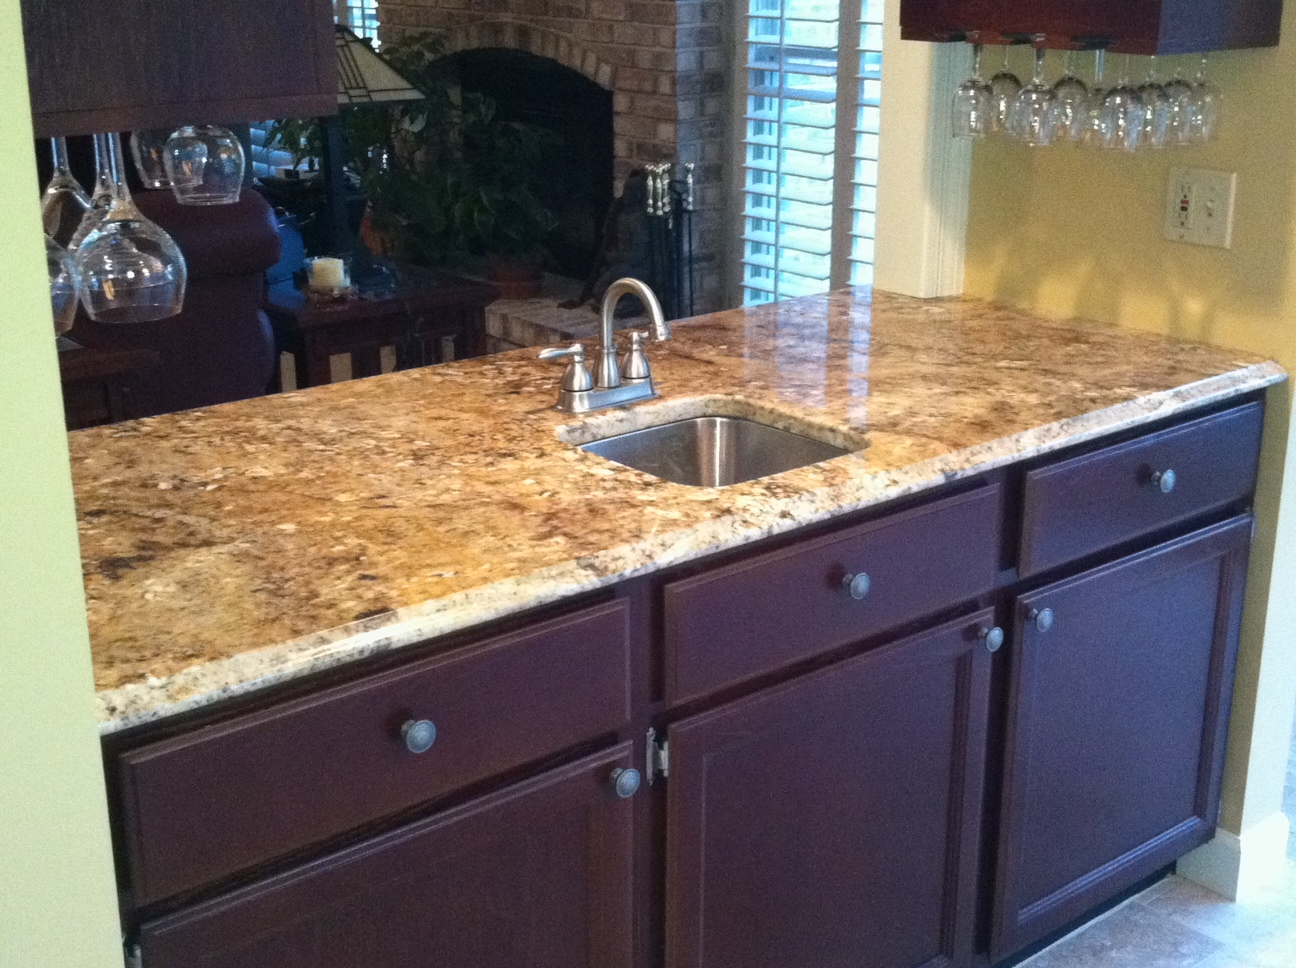 Granite Nilo River Countertops Fabricated And Installed By Stonetrends LLC.  Www.stonetrendsllc.com